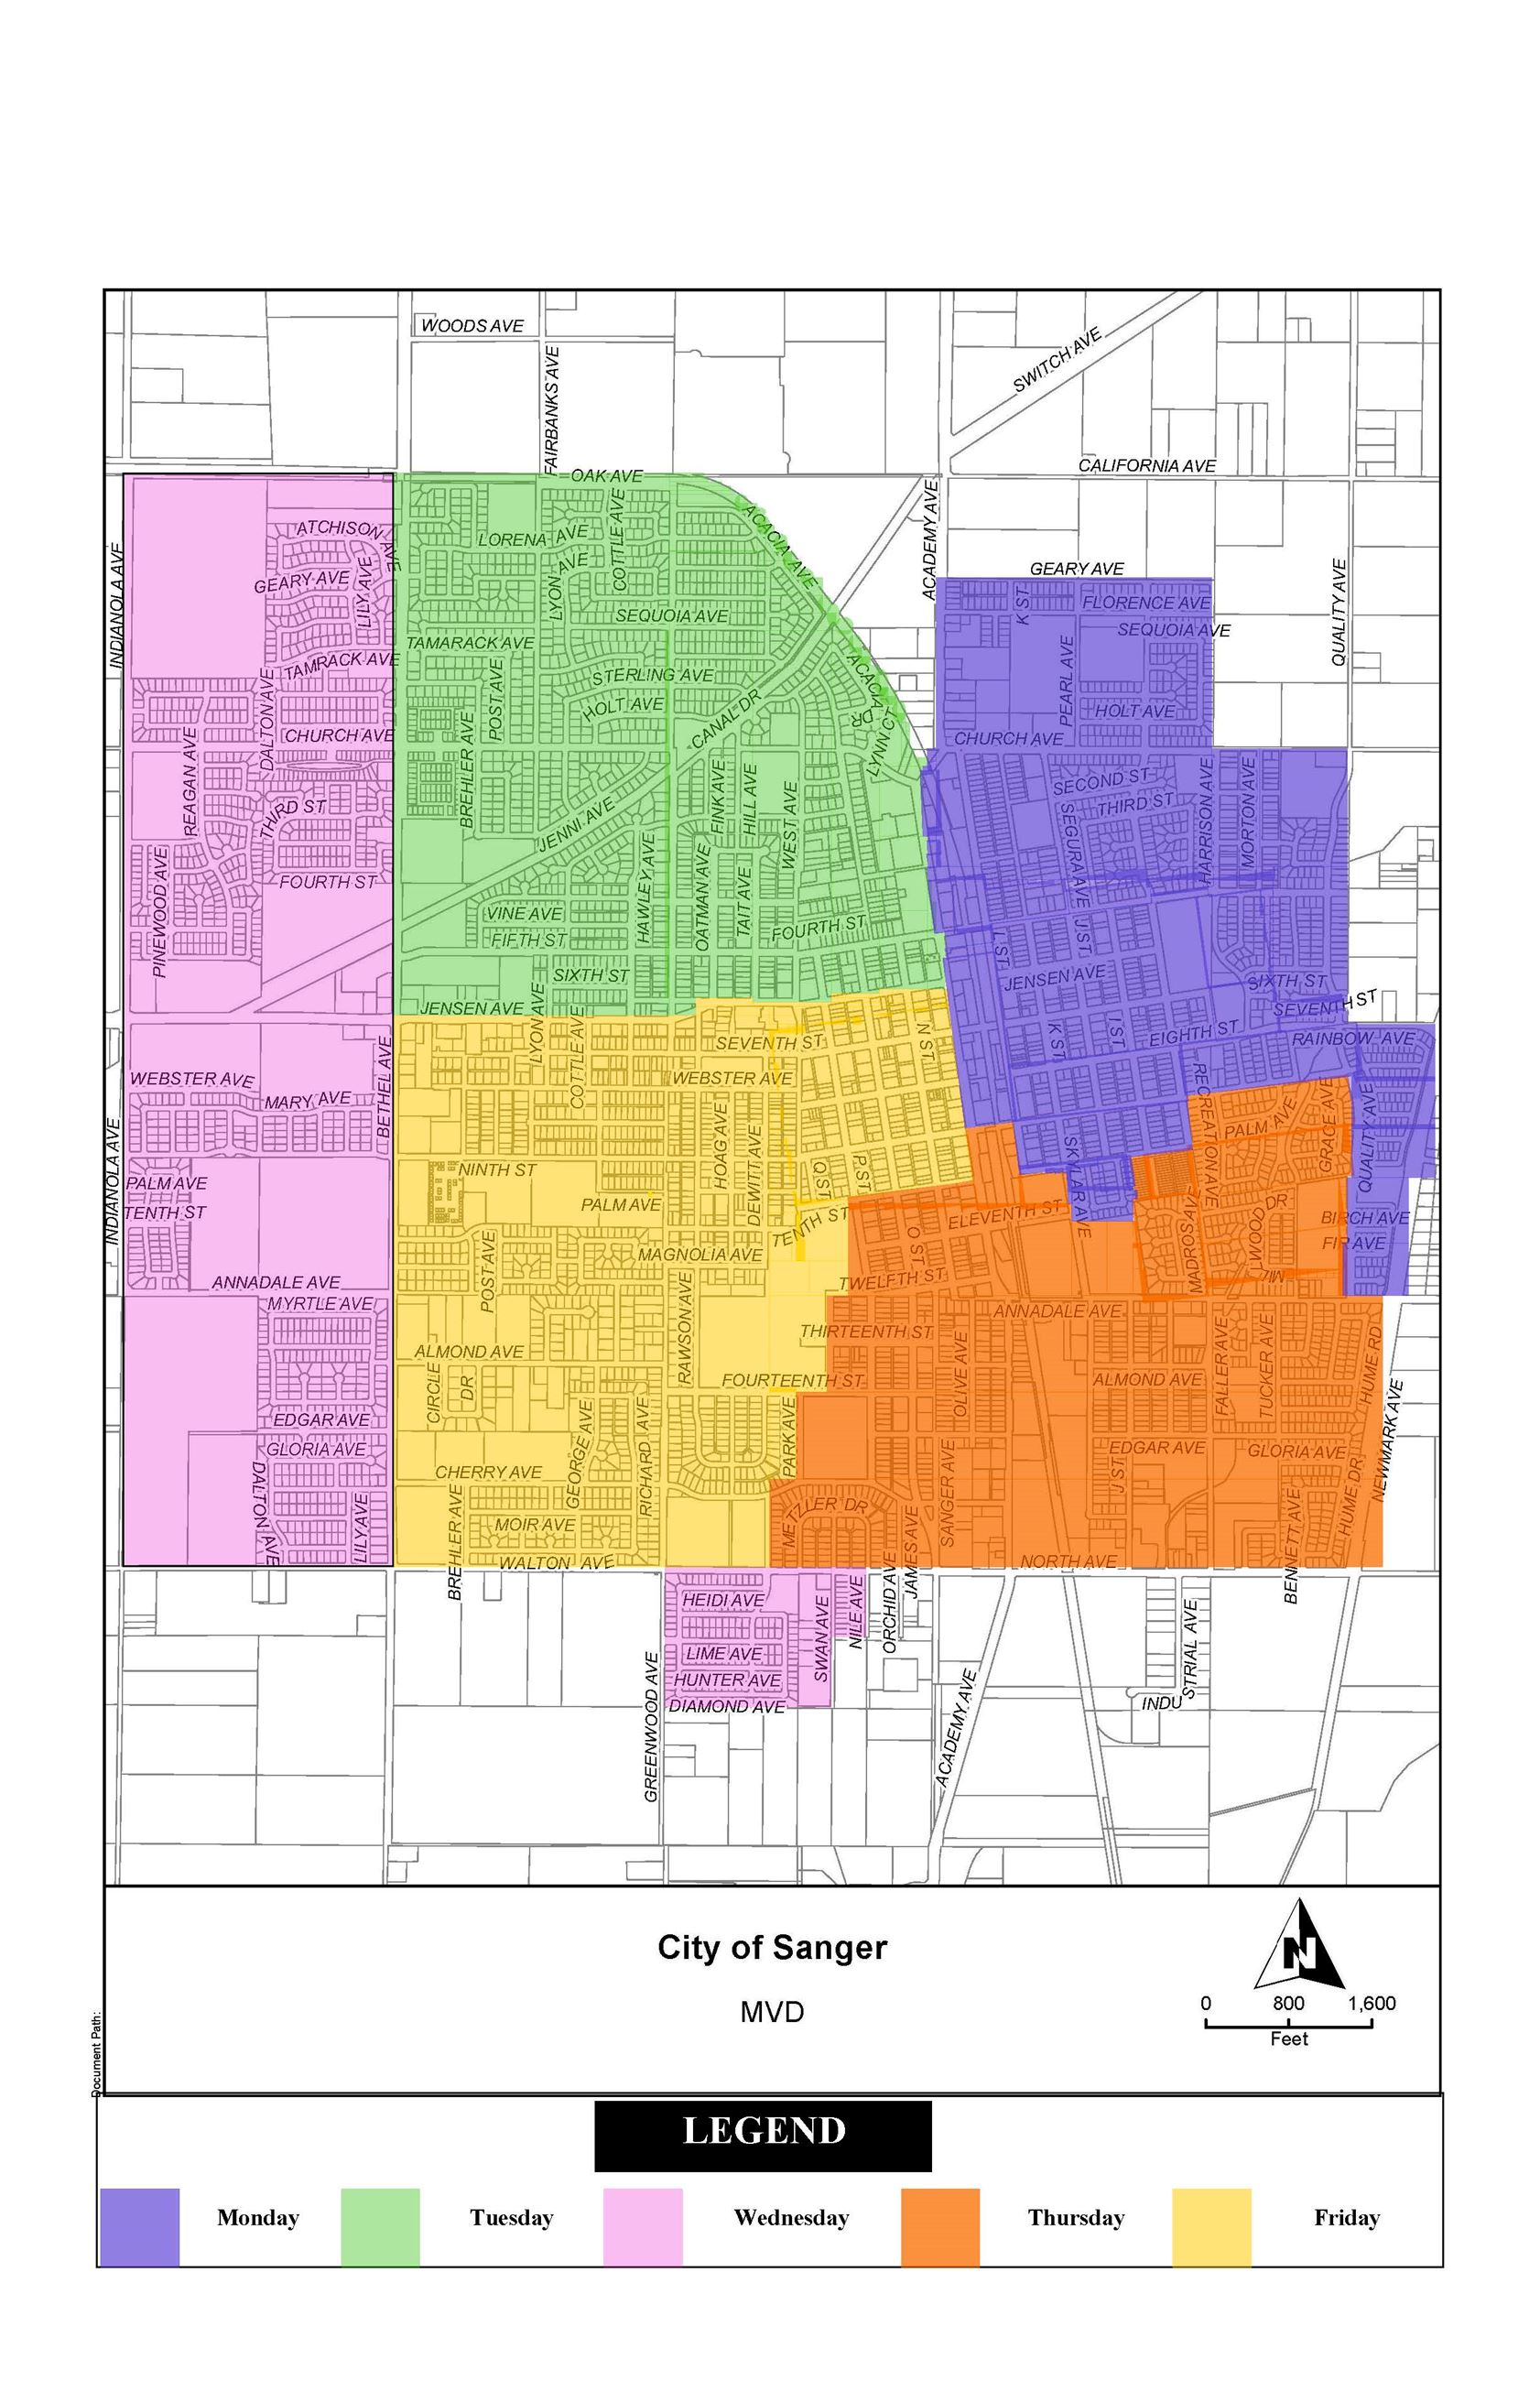 City of Sanger Garbage Collection Schedule Map - 2012 (JPG) Opens in new window